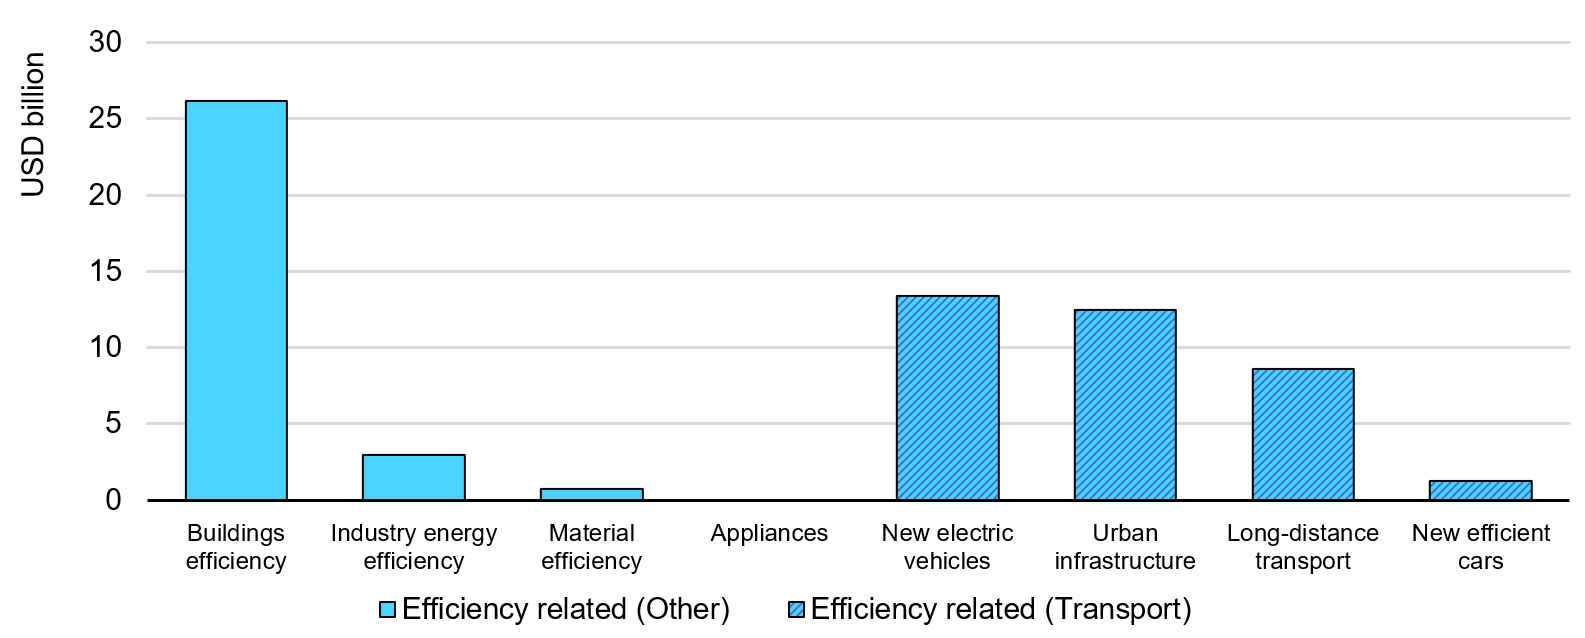 Announced public efficiency-related stimulus funding by measure. Source: IEA Energy Efficiency 2020.